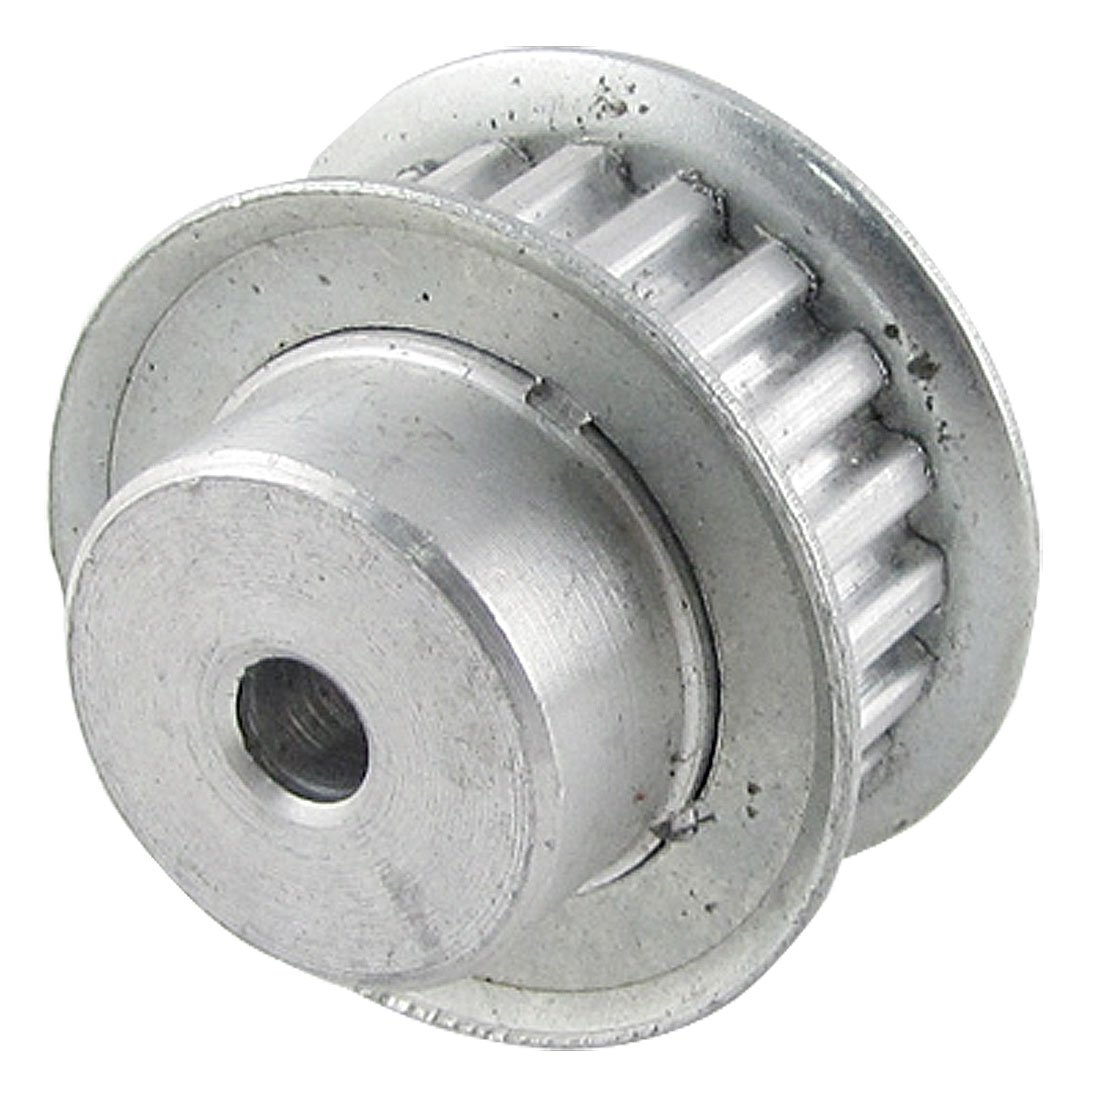 Xl Pulleys And Belts : Double flange xl type quot pitch tooth groove belt